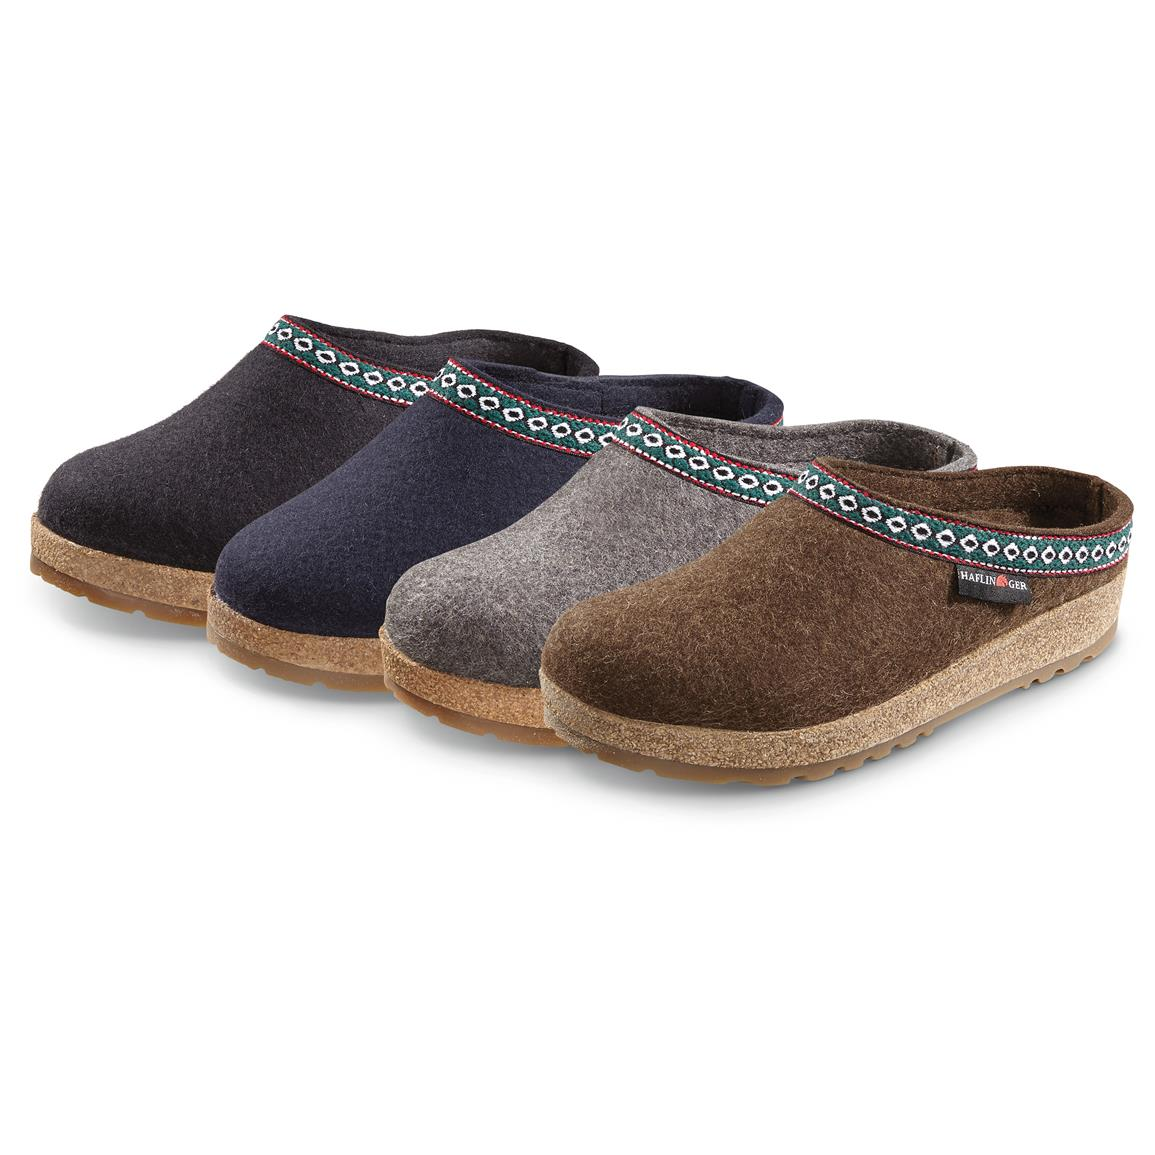 Men's and Women's Haflinger Classic Grizzly Clogs